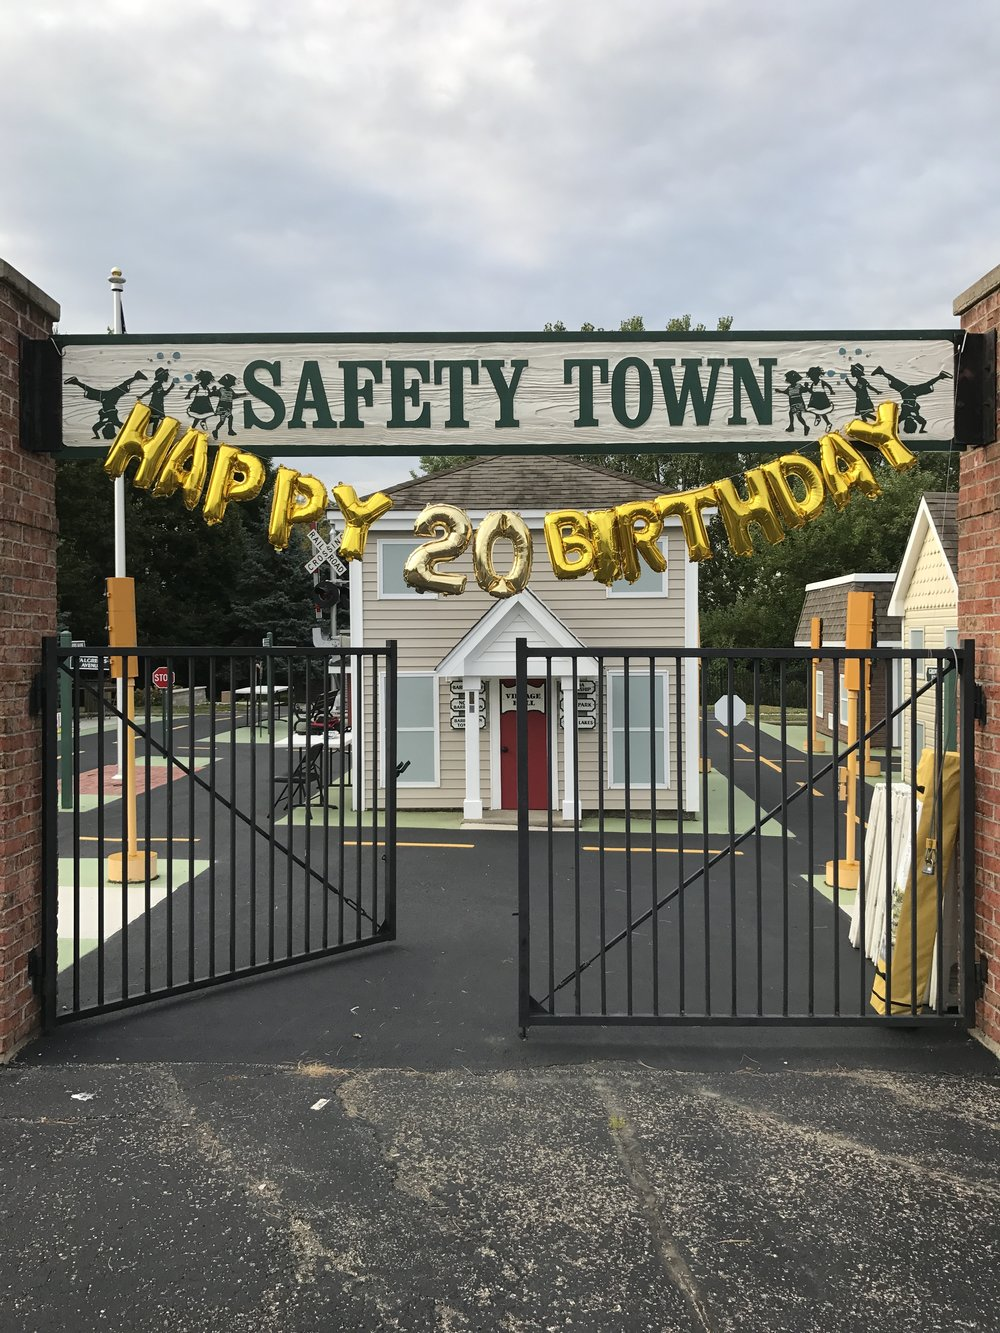 "Sunshine and clear blue skies greeted guests of all ages at the 20th birthday celebration for Safety Town on Saturday, August 26, 2017. -  Guests were excited to see new additions and renovations to the Safety Town site including a full size railroad crossing gate, built and donated by Union Pacific Railroad, and a flagpole.    Union Pacific also honored the little town by designating it an official ""Train Town USA""."